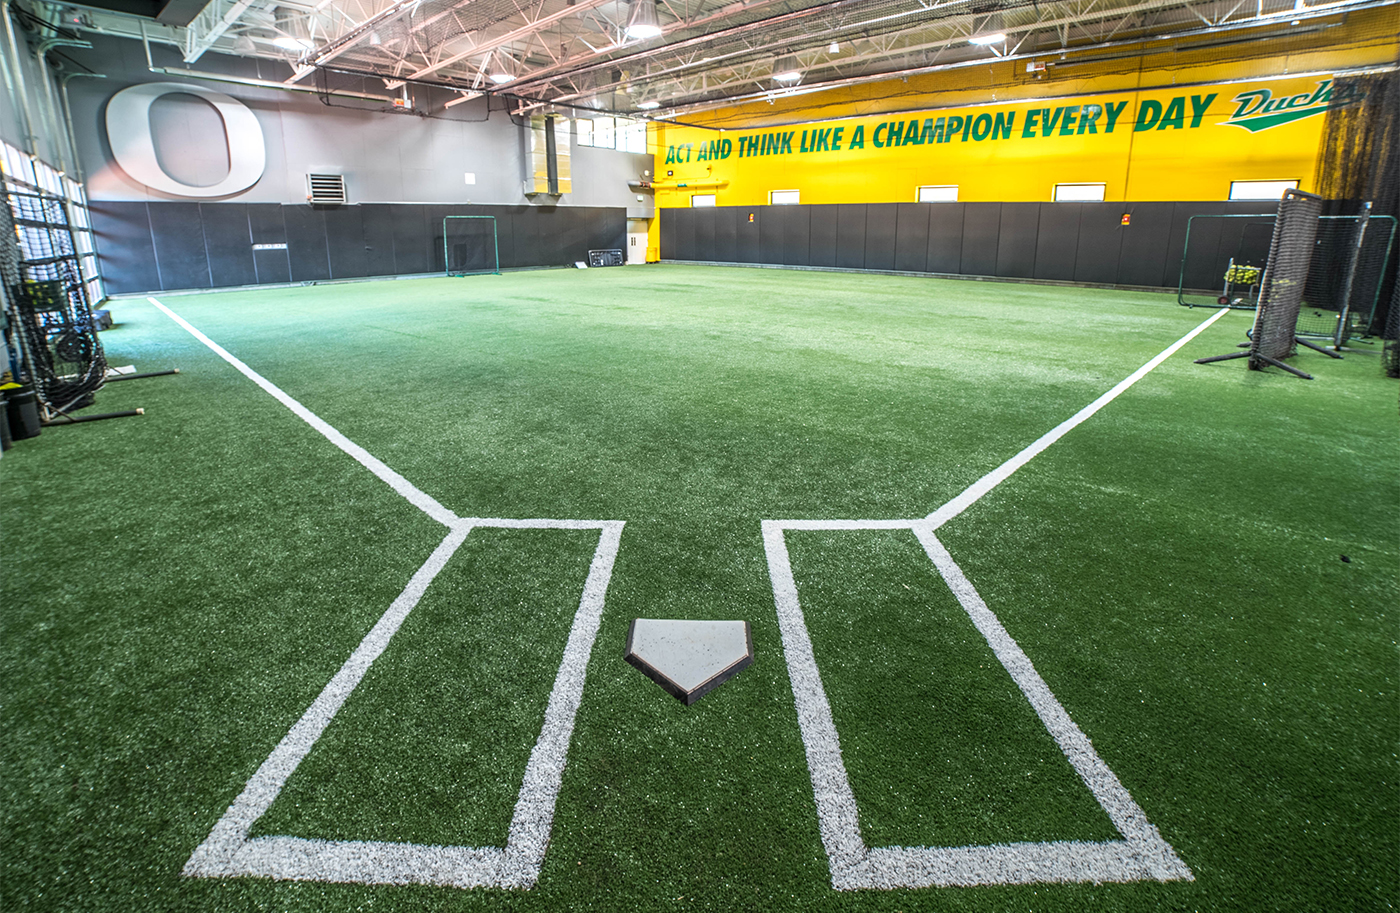 Practice facility oversized throwback graphics by AHM